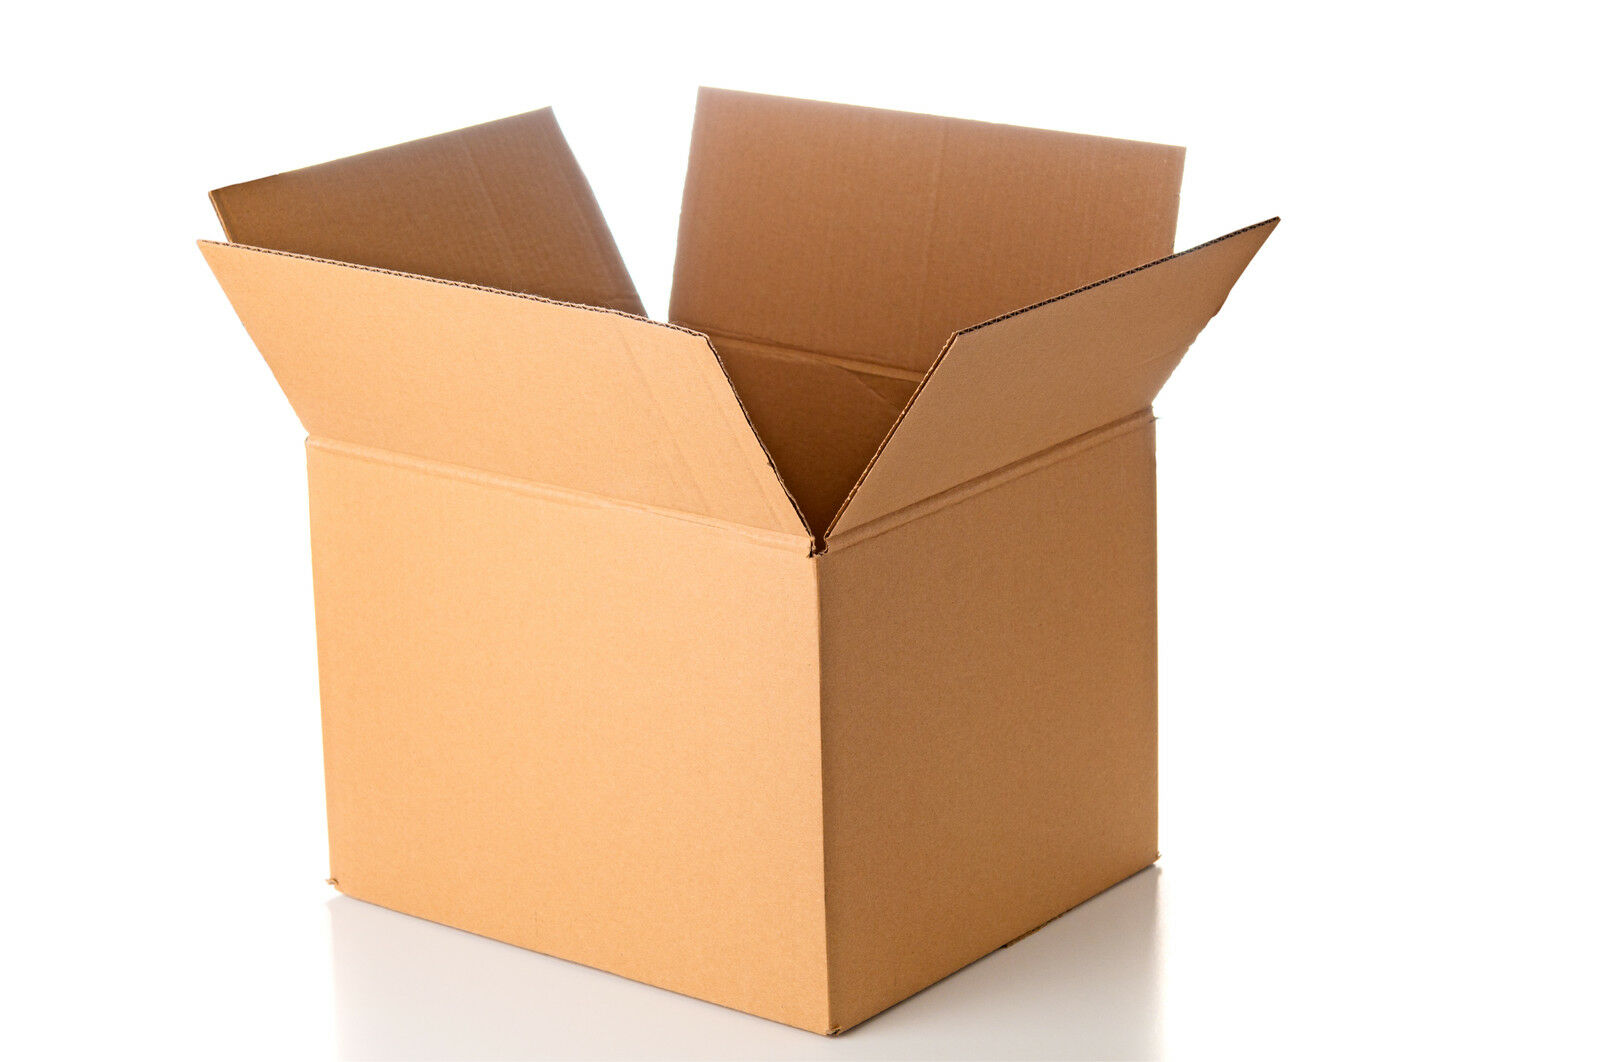 50 x 30x18x18  DOUBLE WALL STRONG CARDBOARD MOVING BOXES